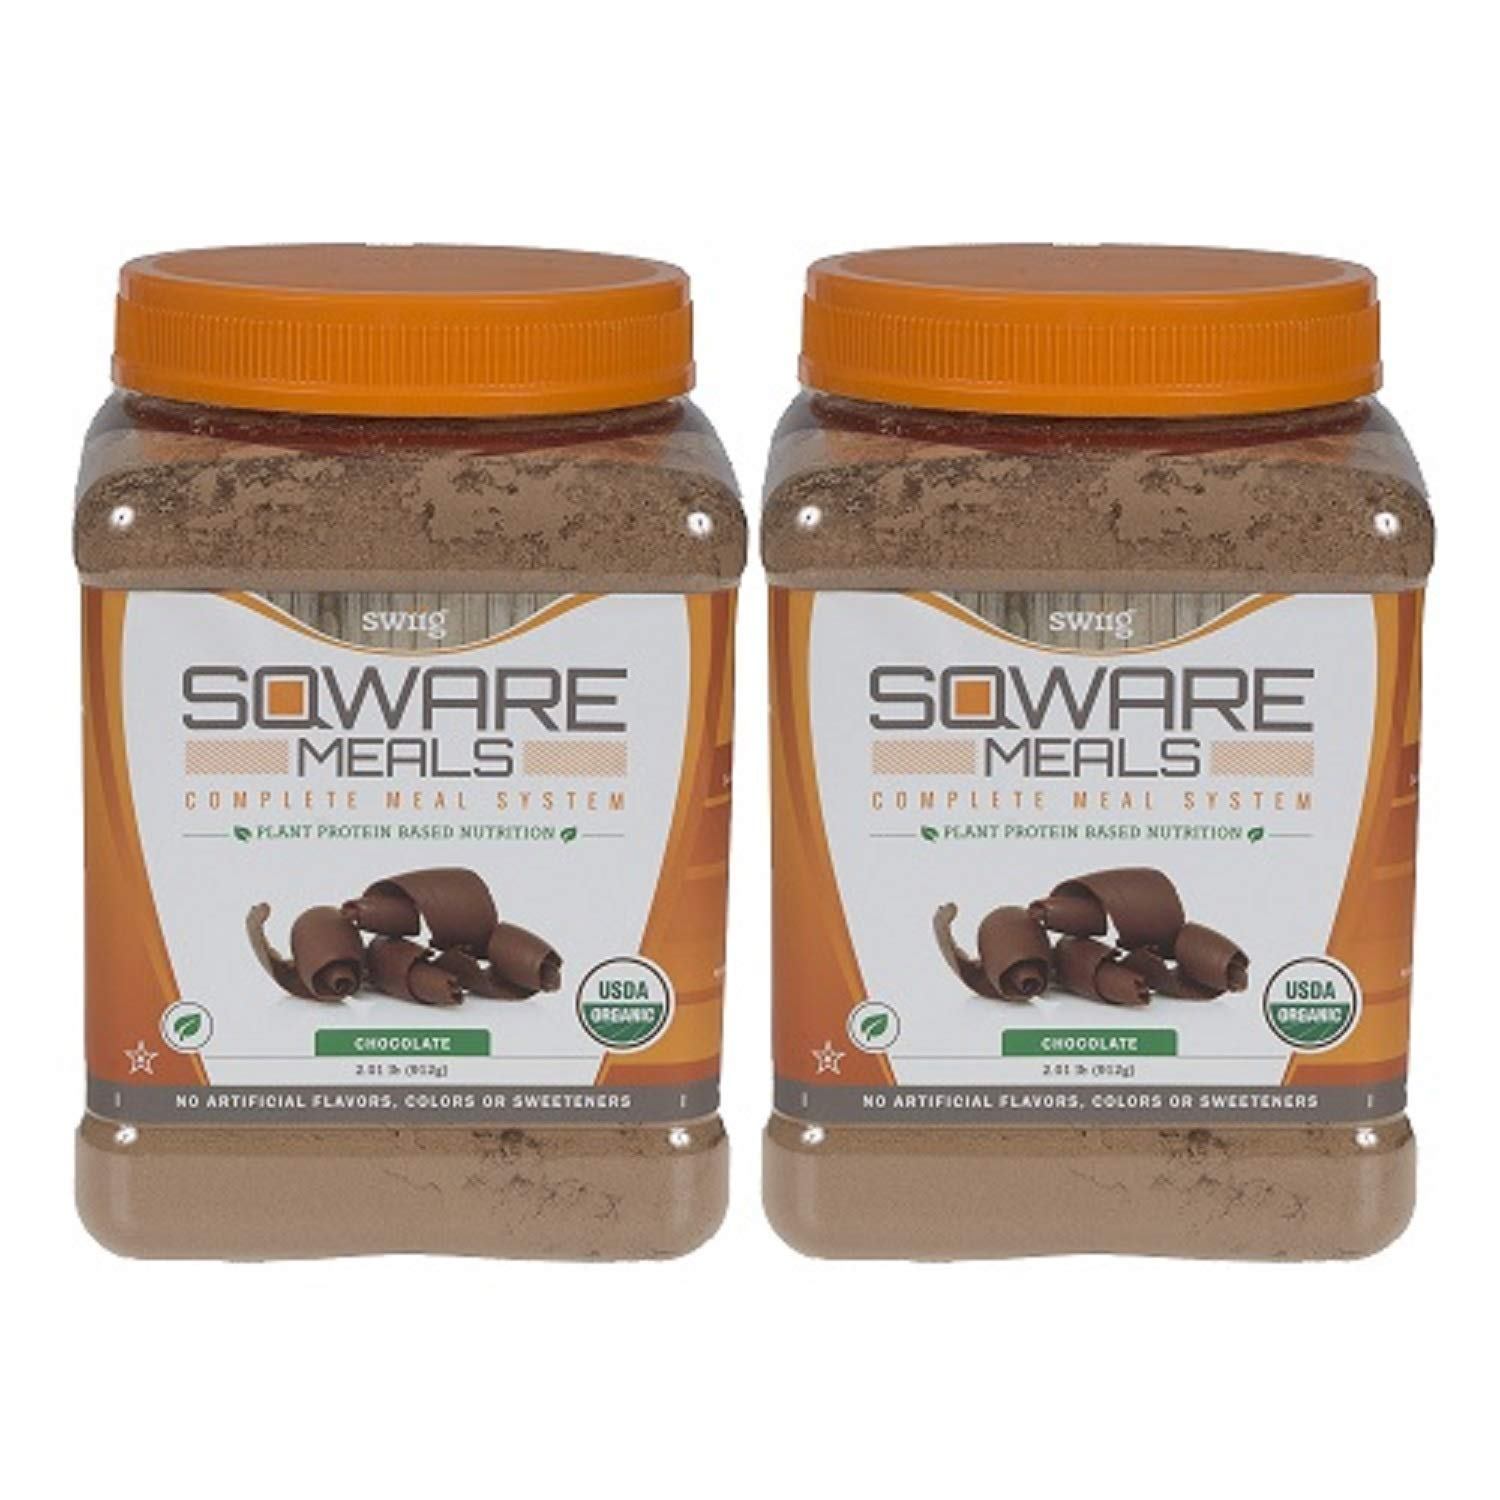 SQWARE Meals - Organic Complete Meal System, Plant Protein Based Nutrition Chocolate, 32 Servings (1 Month Supply)